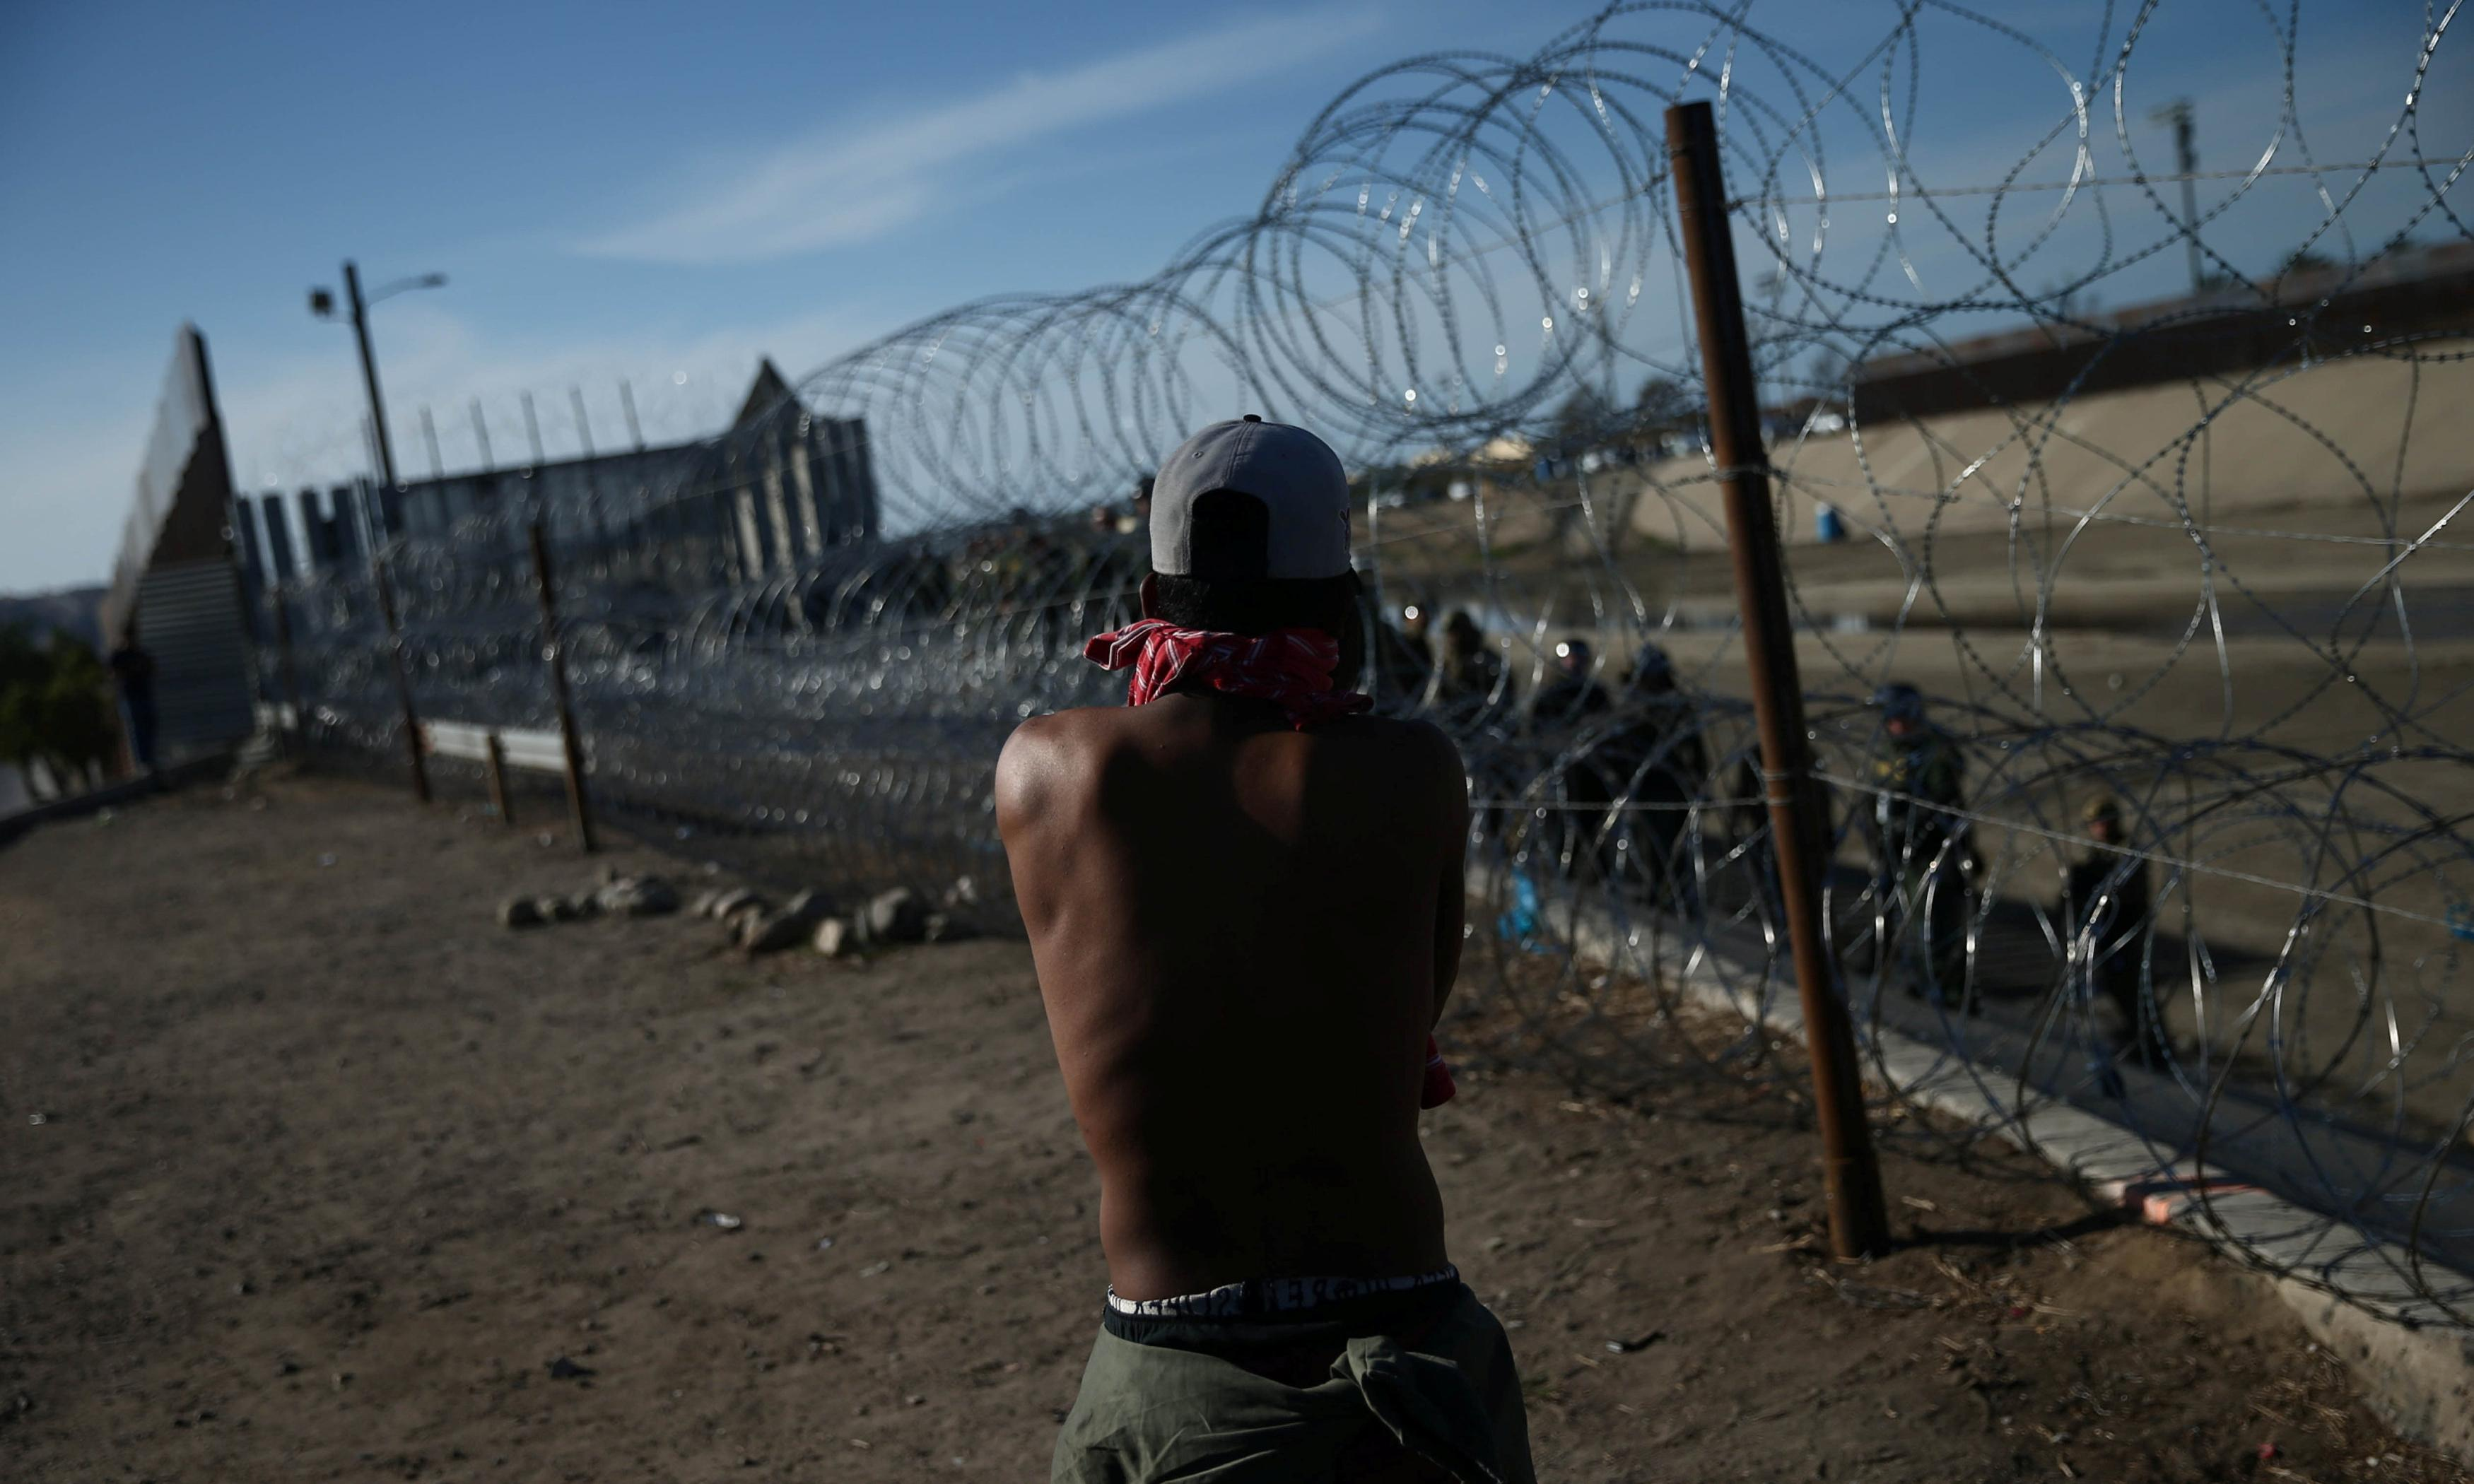 America pays for the wall: thieves mock Trump by stealing border razor wire